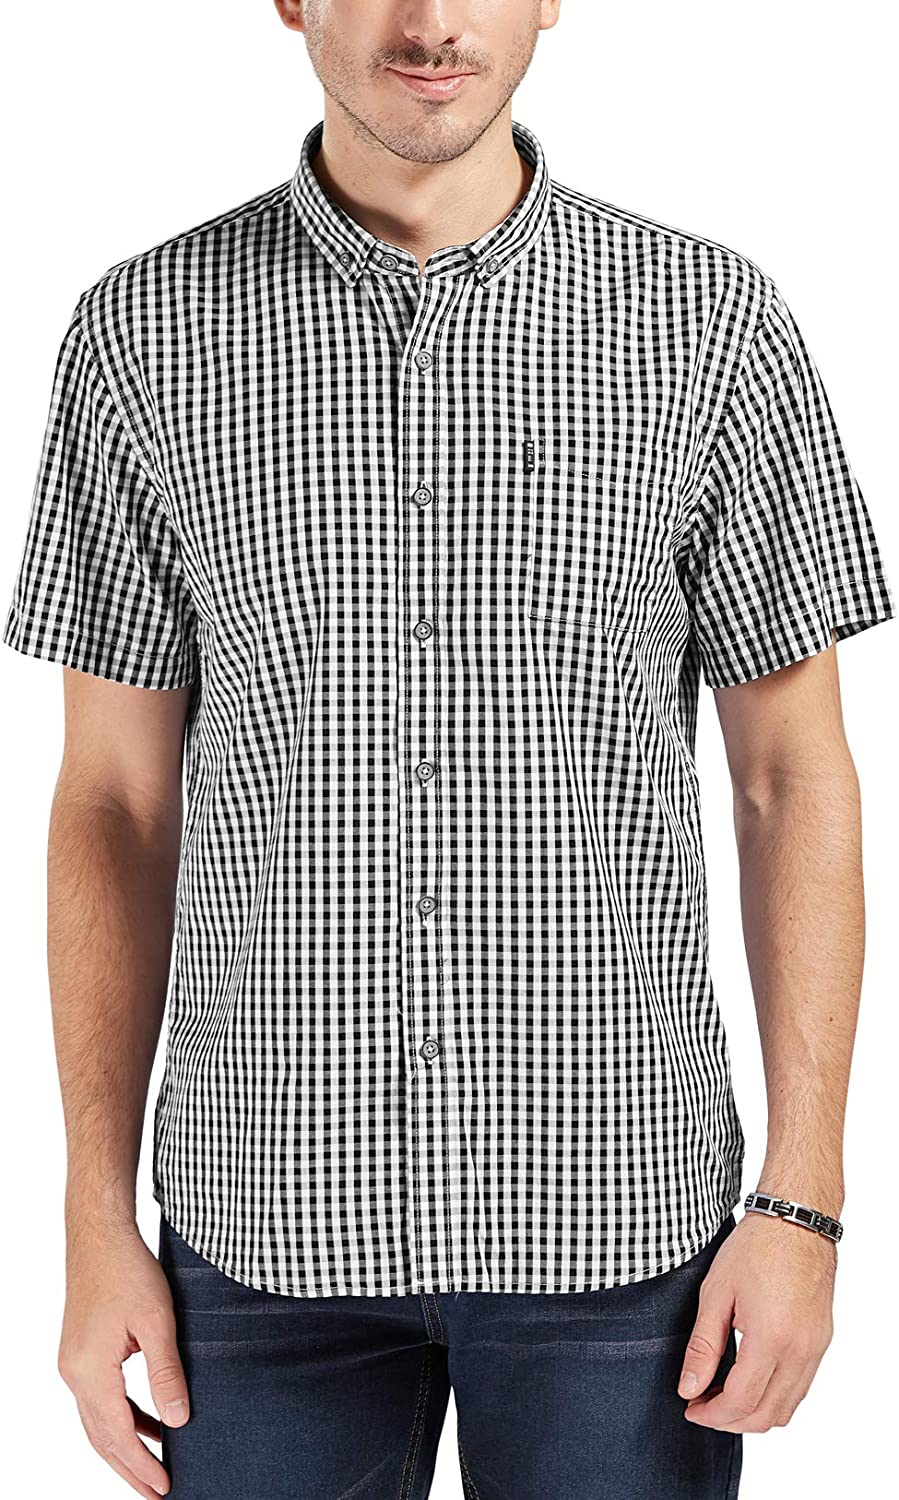 Trimthread Mens Simple Stylish Classic Fit Plaid Long Sleeve Button Up Casual Shirt